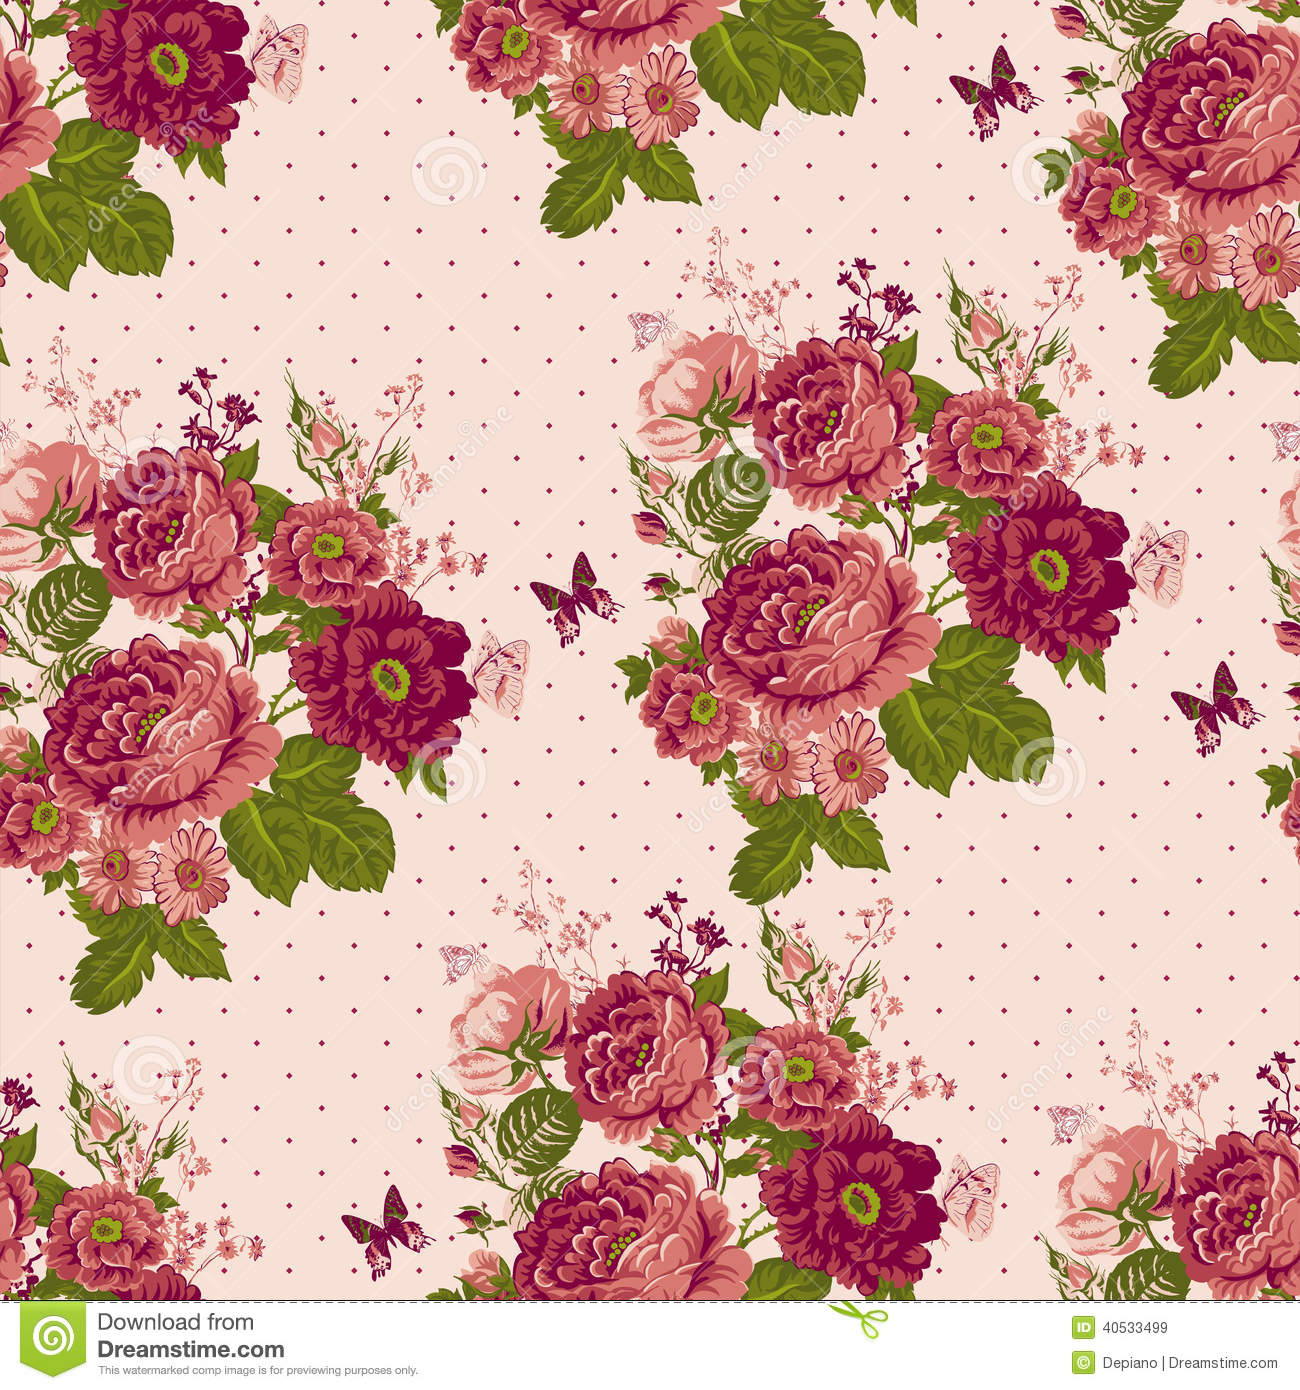 Vintage Print Fabric Rose Pattern Remnant Piece Sewing |Vintage Floral Rose Pattern